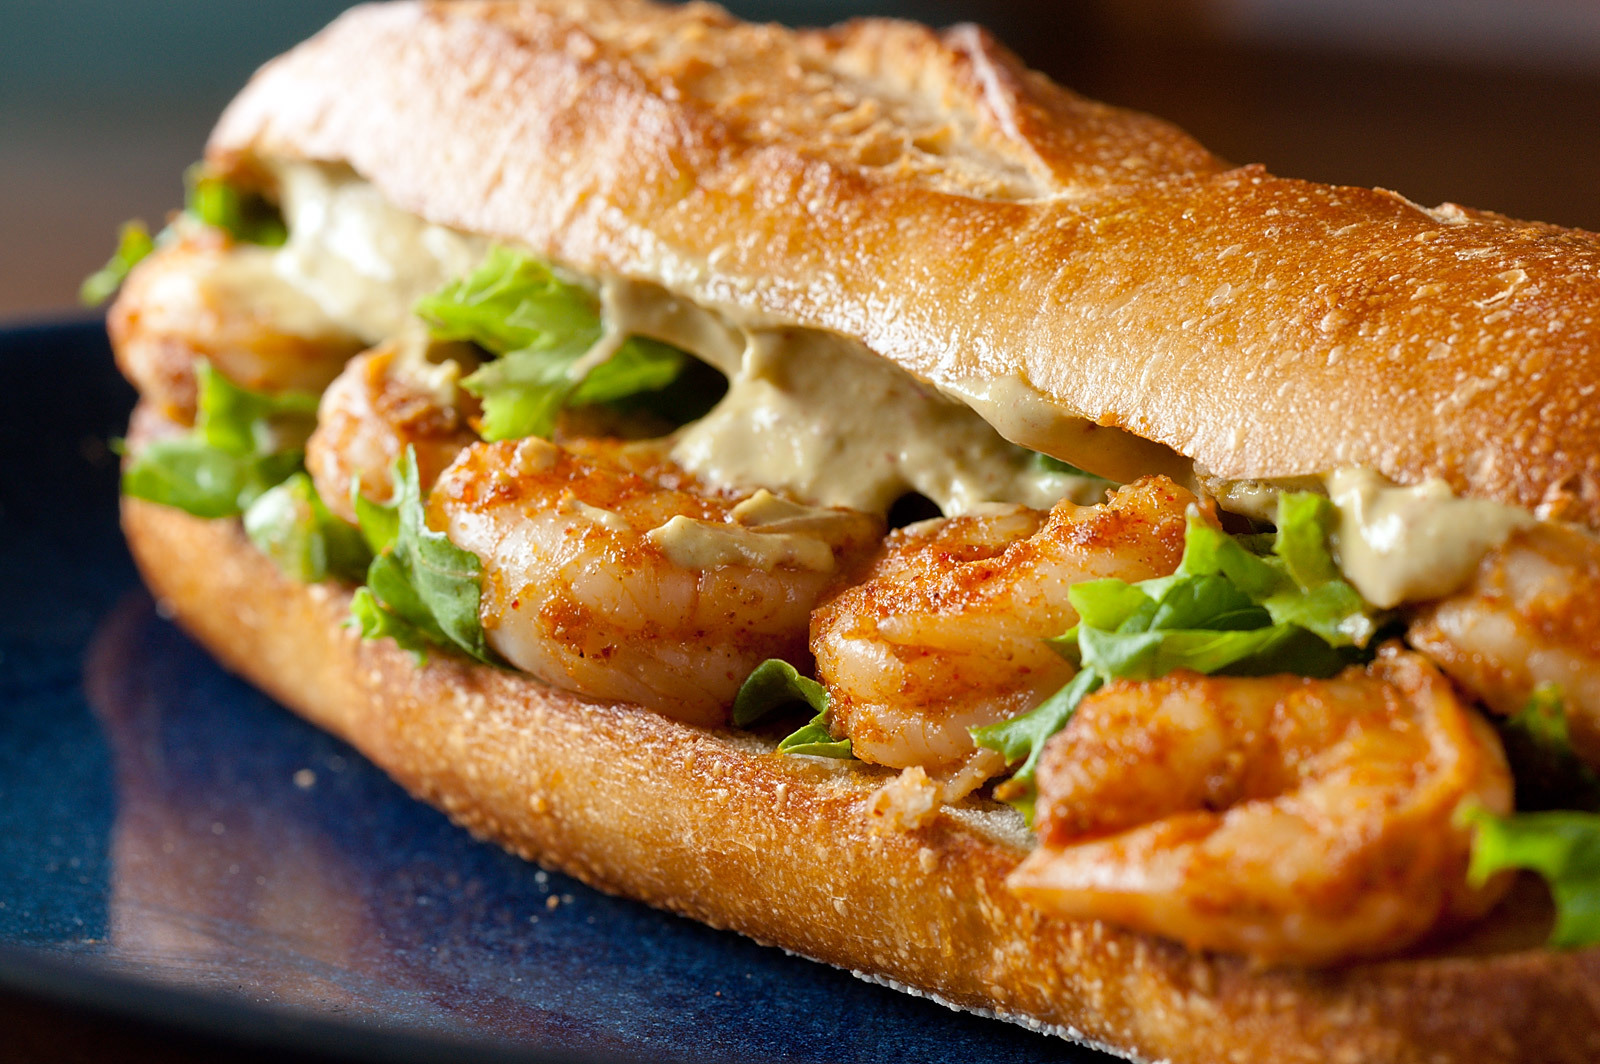 sandwiches shrimps